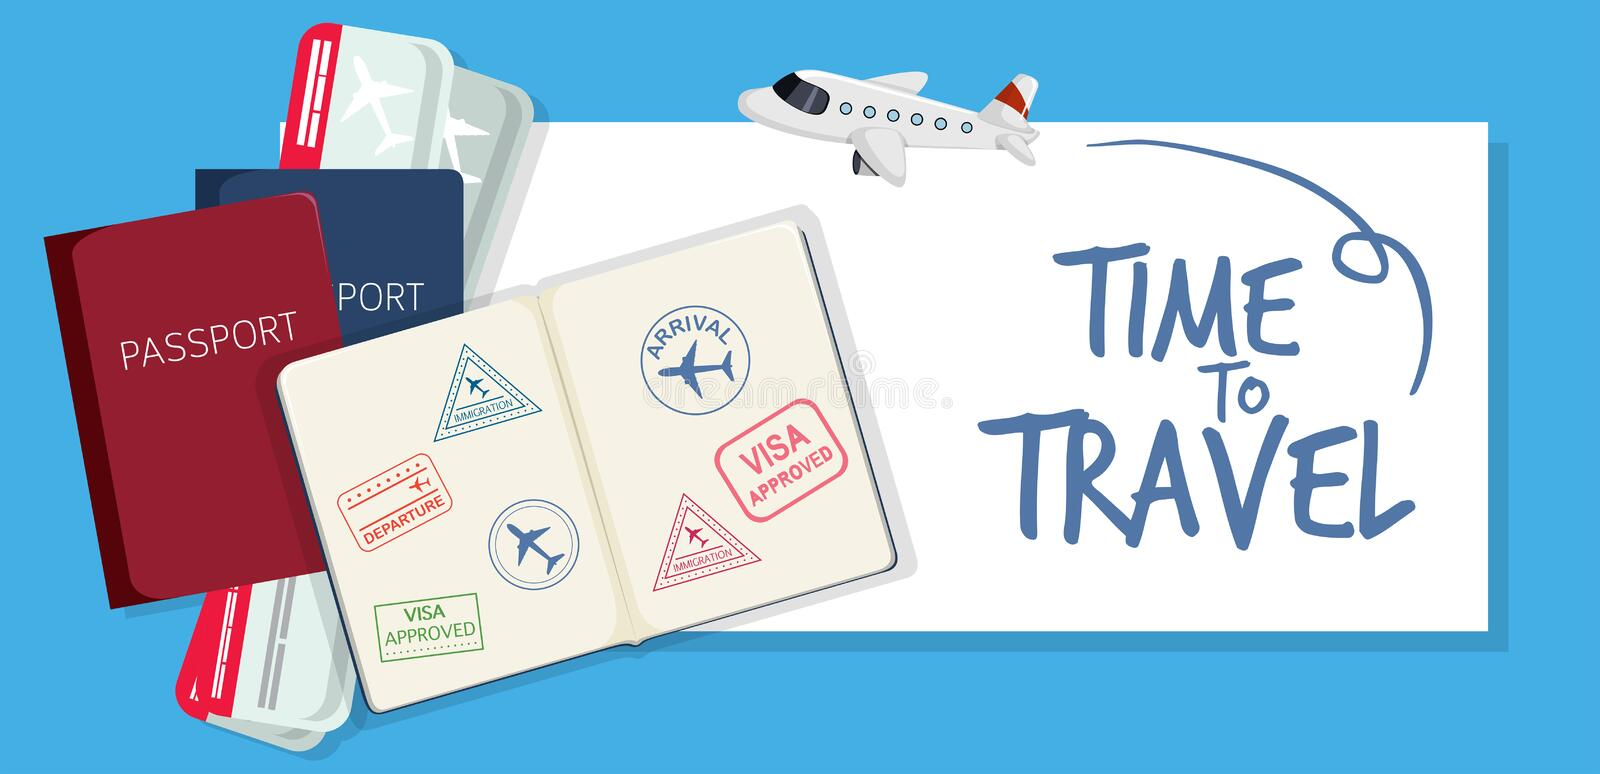 A time to travel icon stock illustration